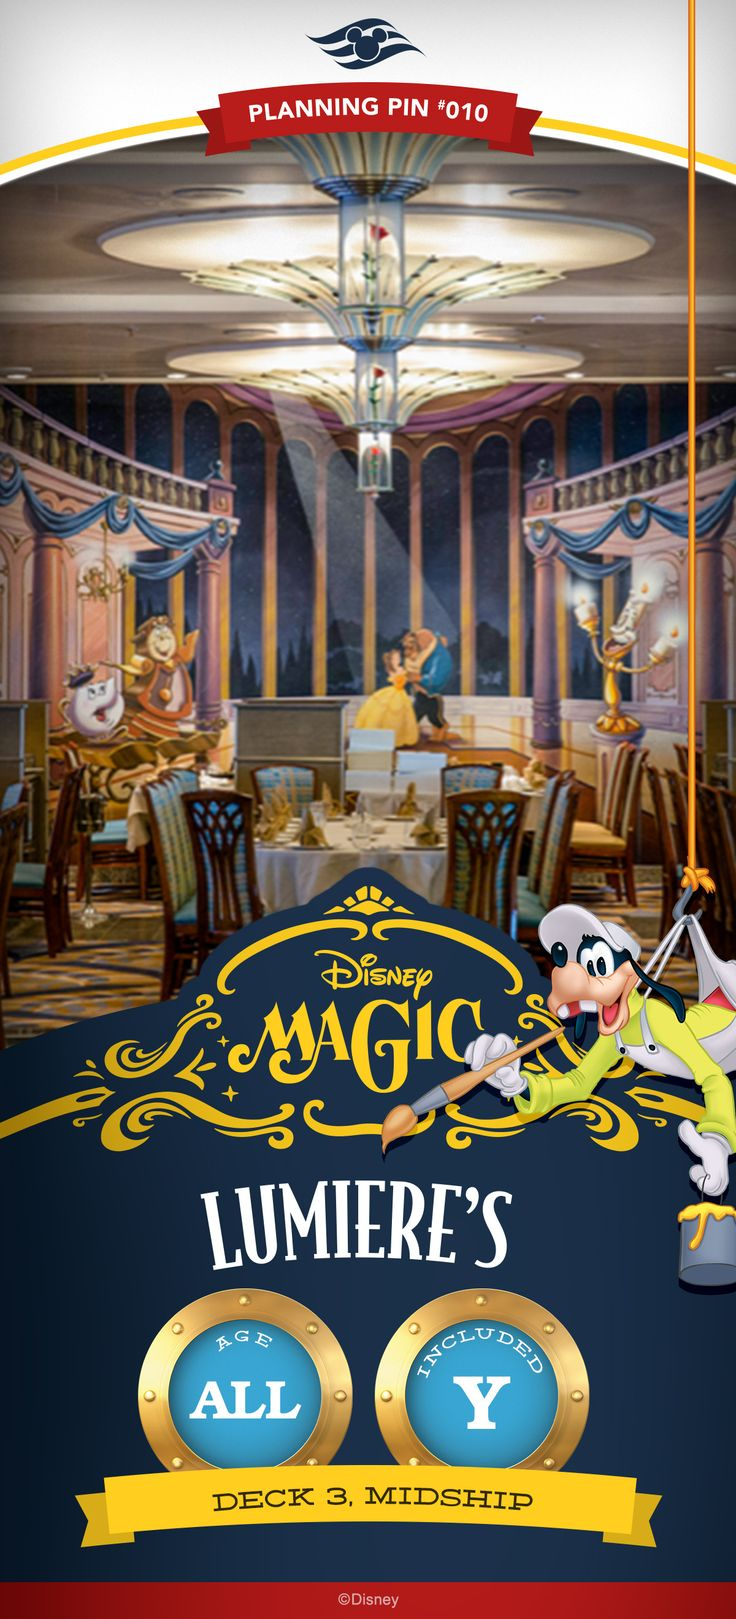 Offering a 4-course affair, Lumiere's onboard Disney Magic will set your taste buds aflame with an enticing selection of American and French fare with a modern twist for supper. Click to learn more about this Disney Cruise Line restaurant.